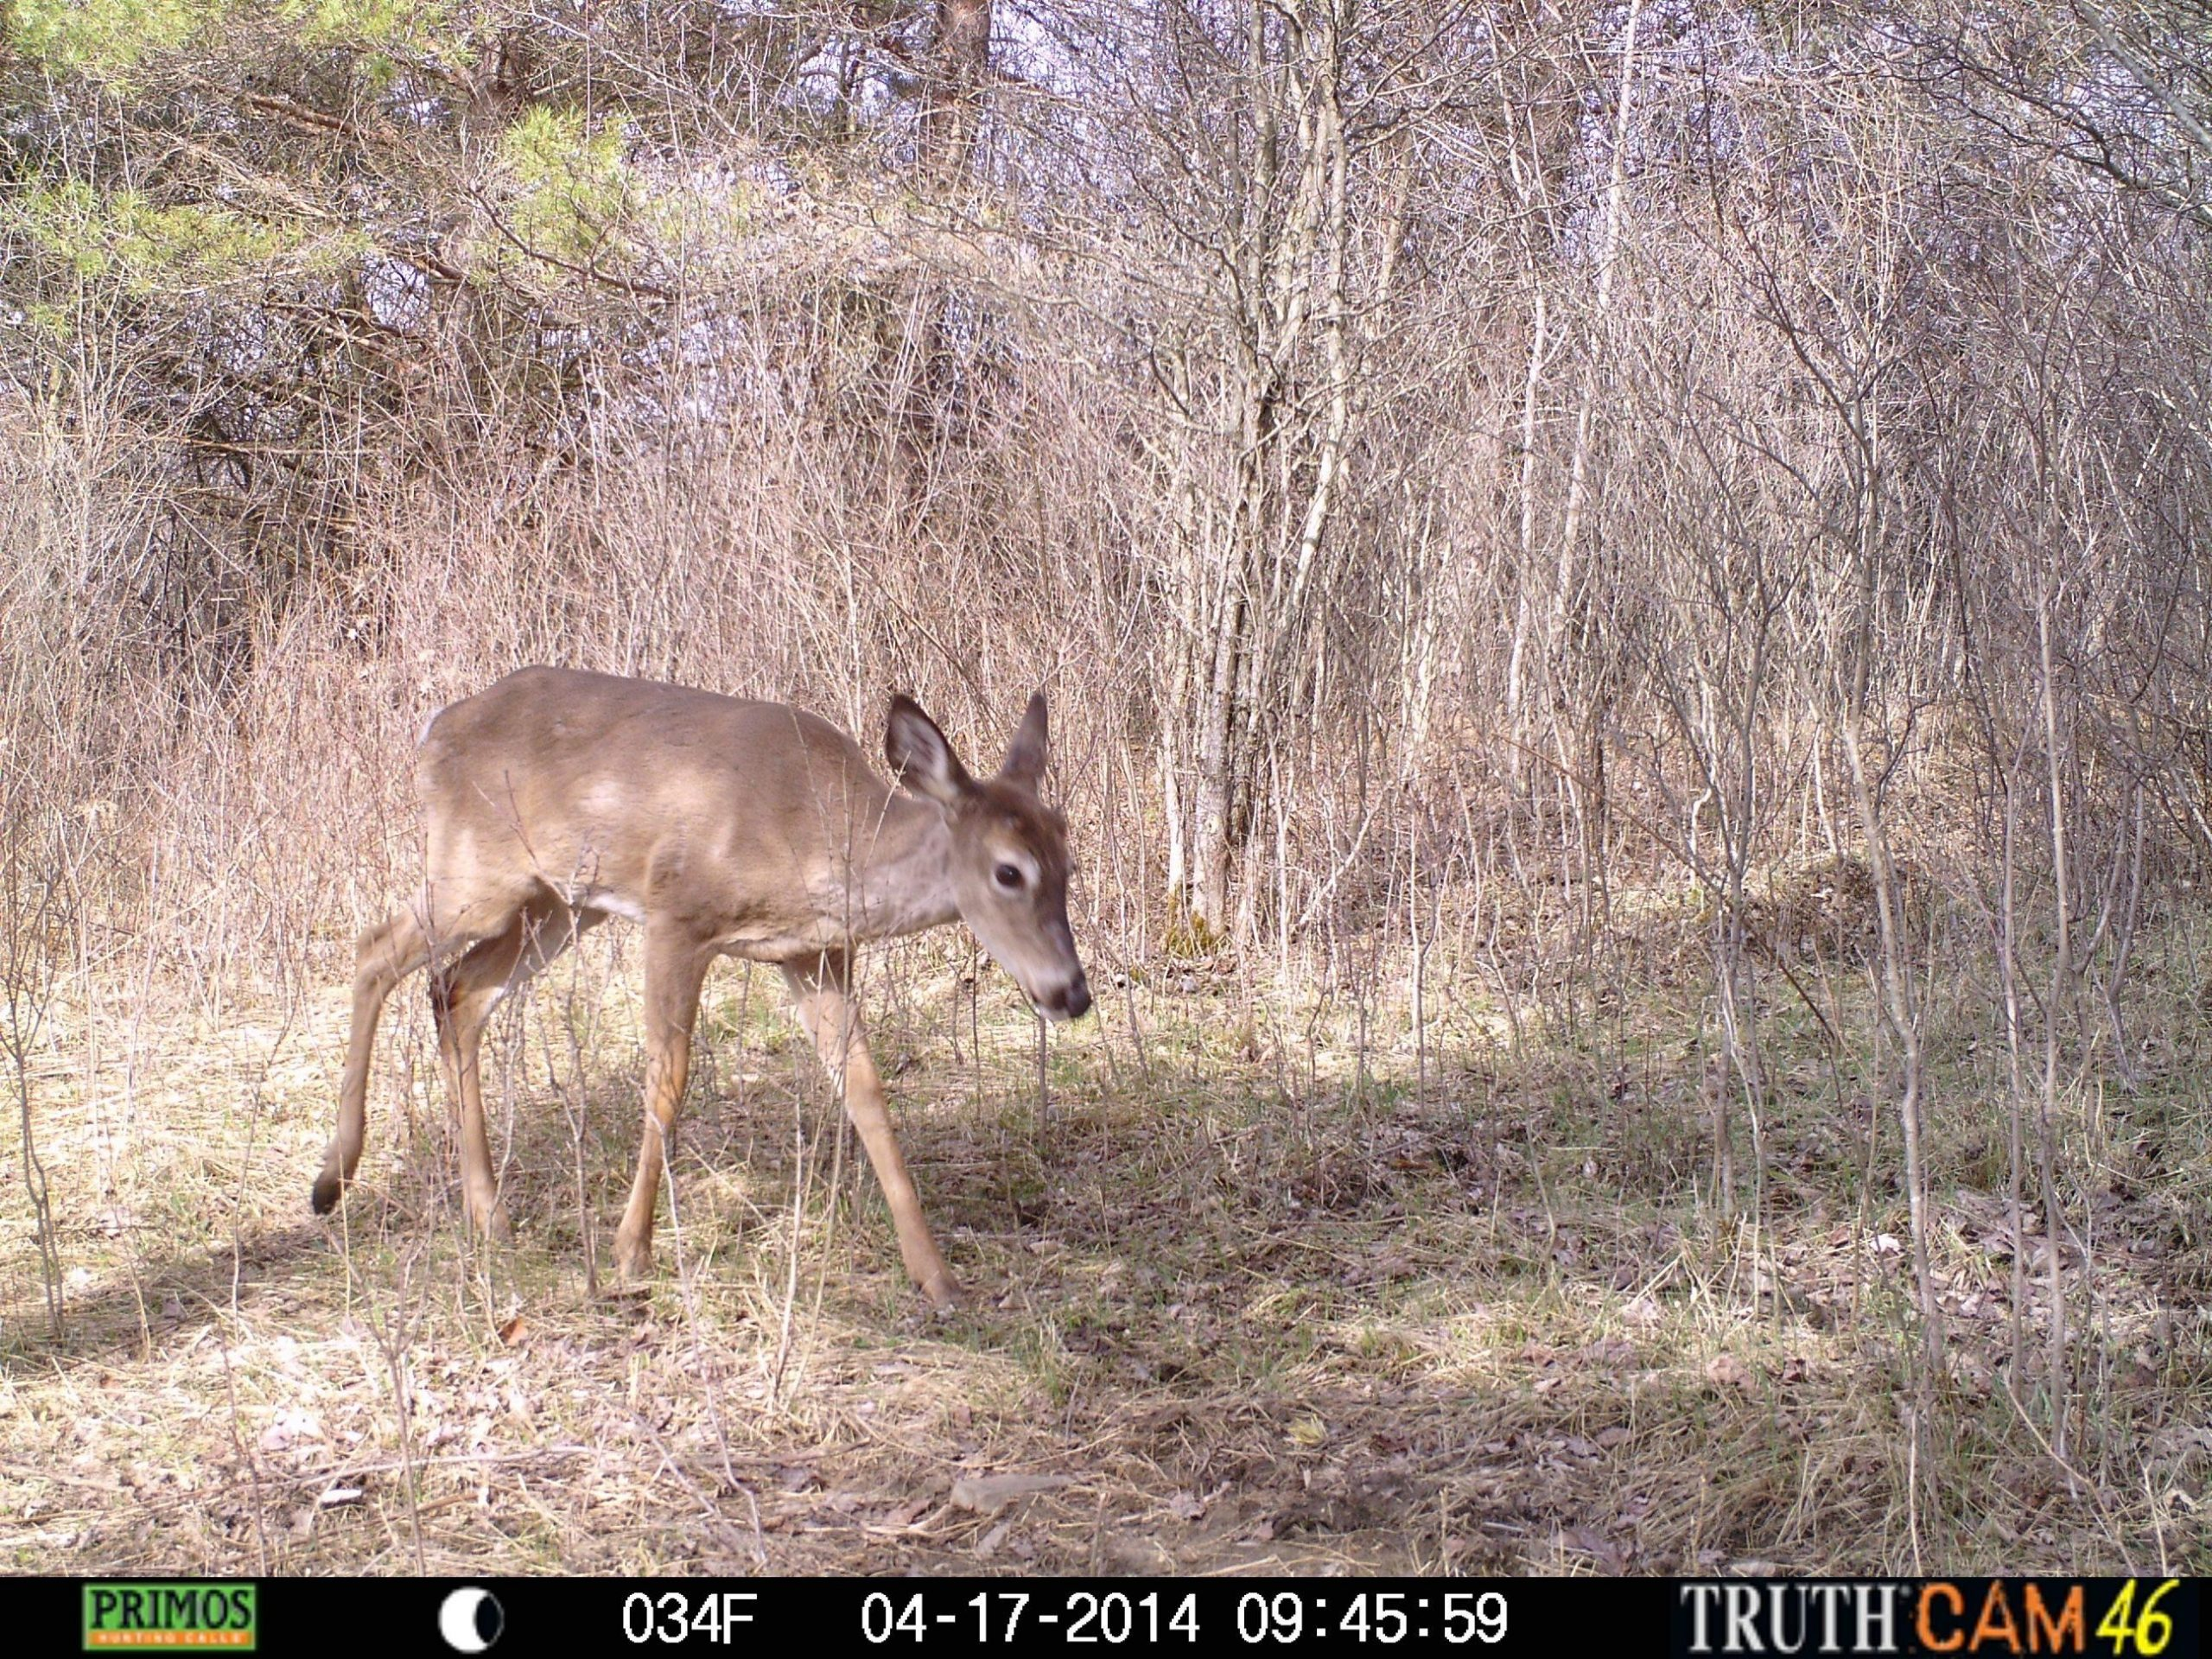 The 2014 Whitetail Rut Prediction - Sports - The Wellsville Daily Reporter - Wellsville, Ny-Whitetail Rut Predictions For 2021